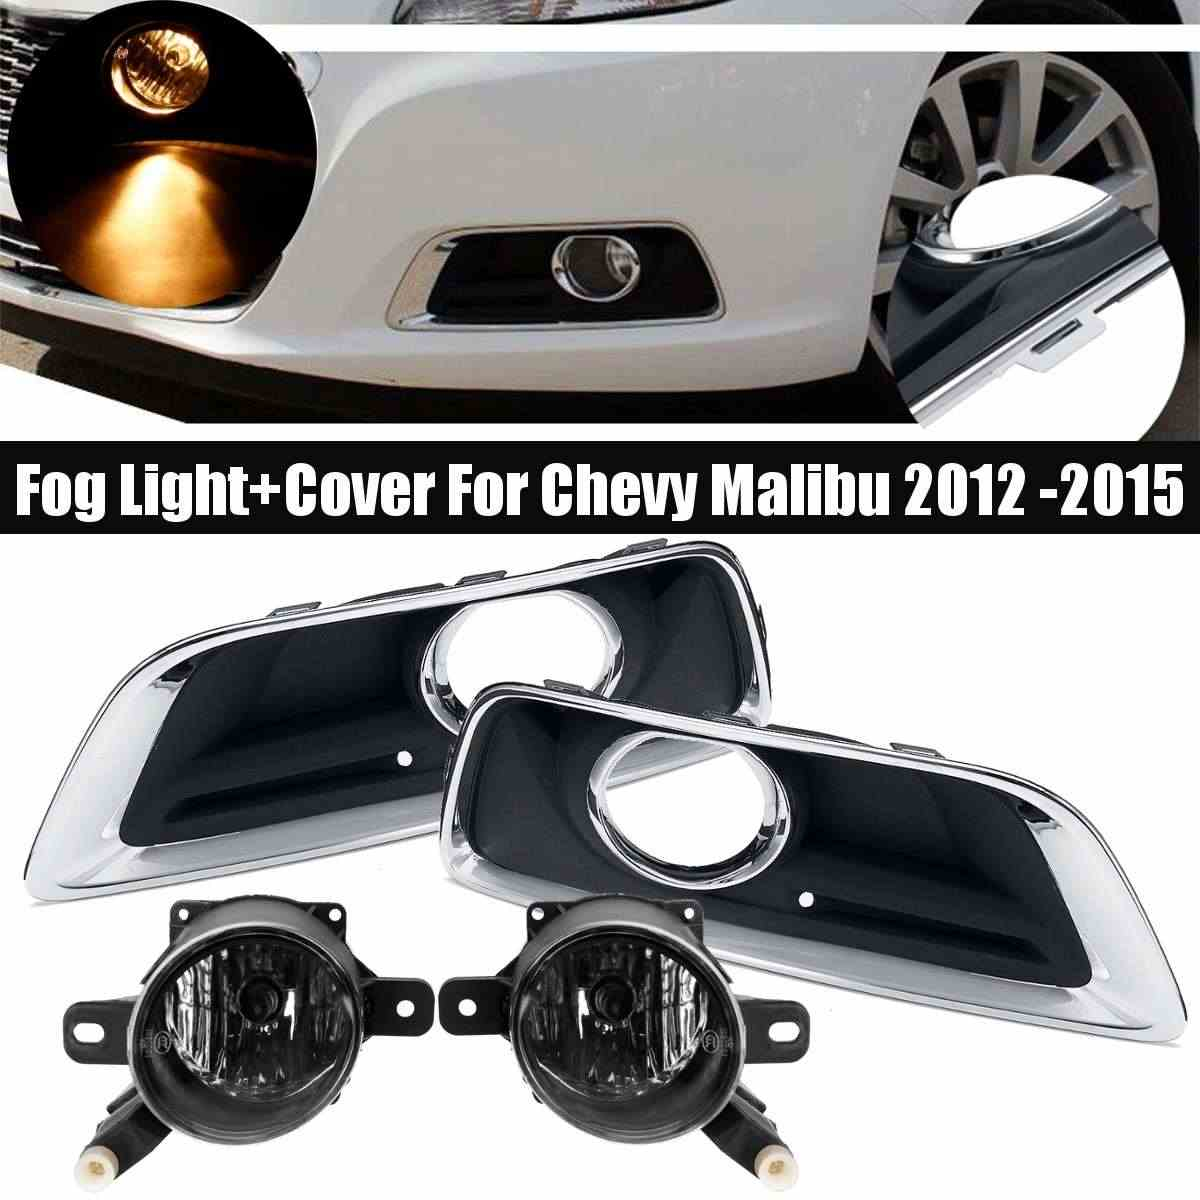 12V H11 Mistlamp En Cover Voor Chevy Malibu 2012 2013 2014 2015 Auto Foglight Front Lower Bumper Grill frame Driving Lamp Drl